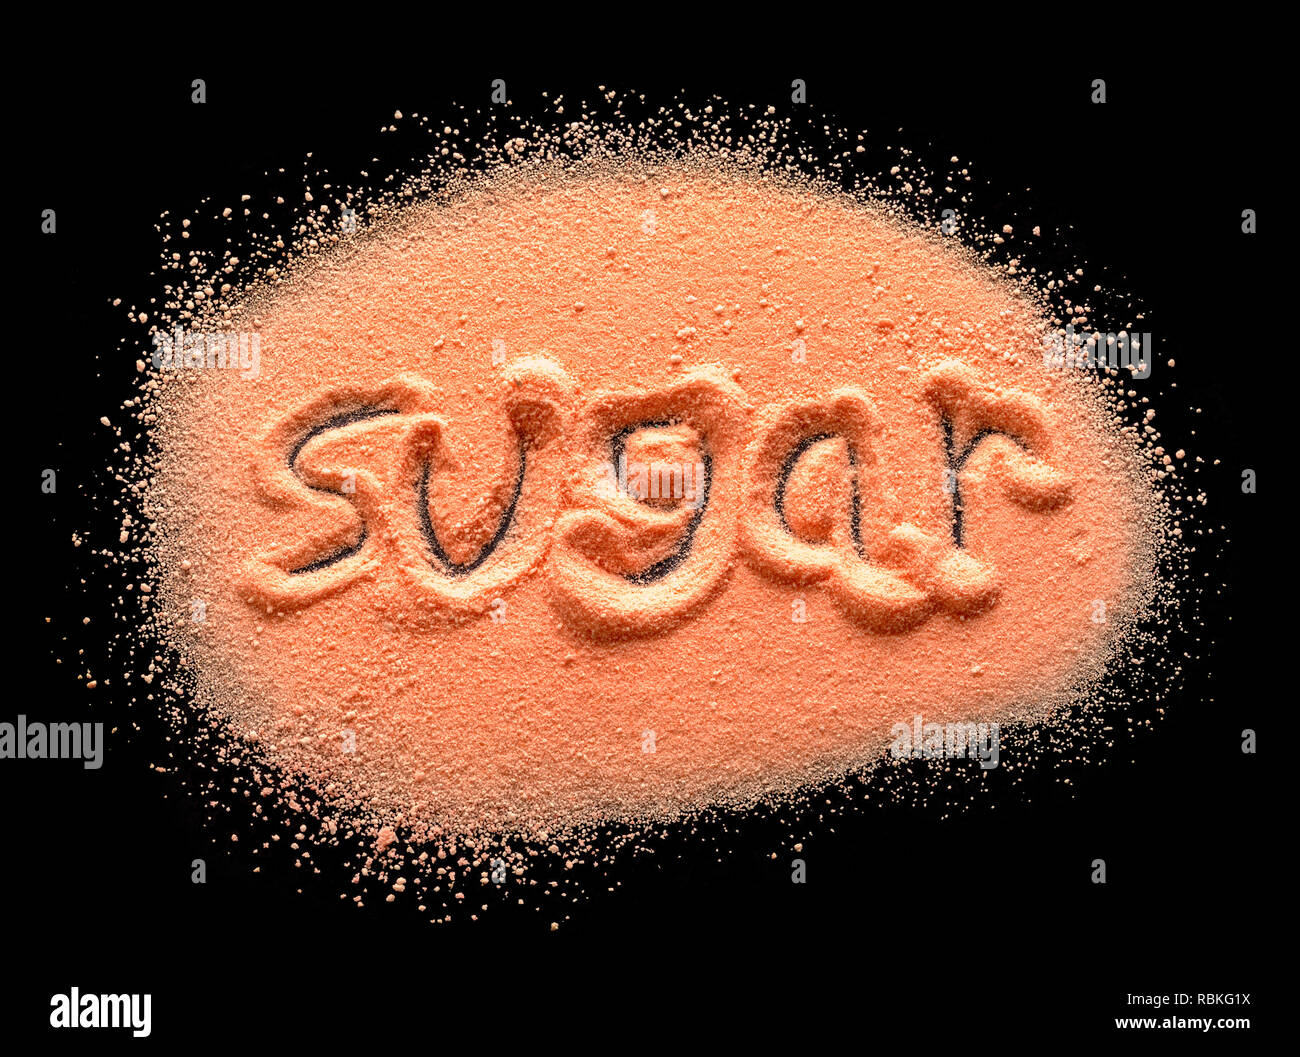 Word Sugar Written in Orange Candy Powder on Black. - Stock Image